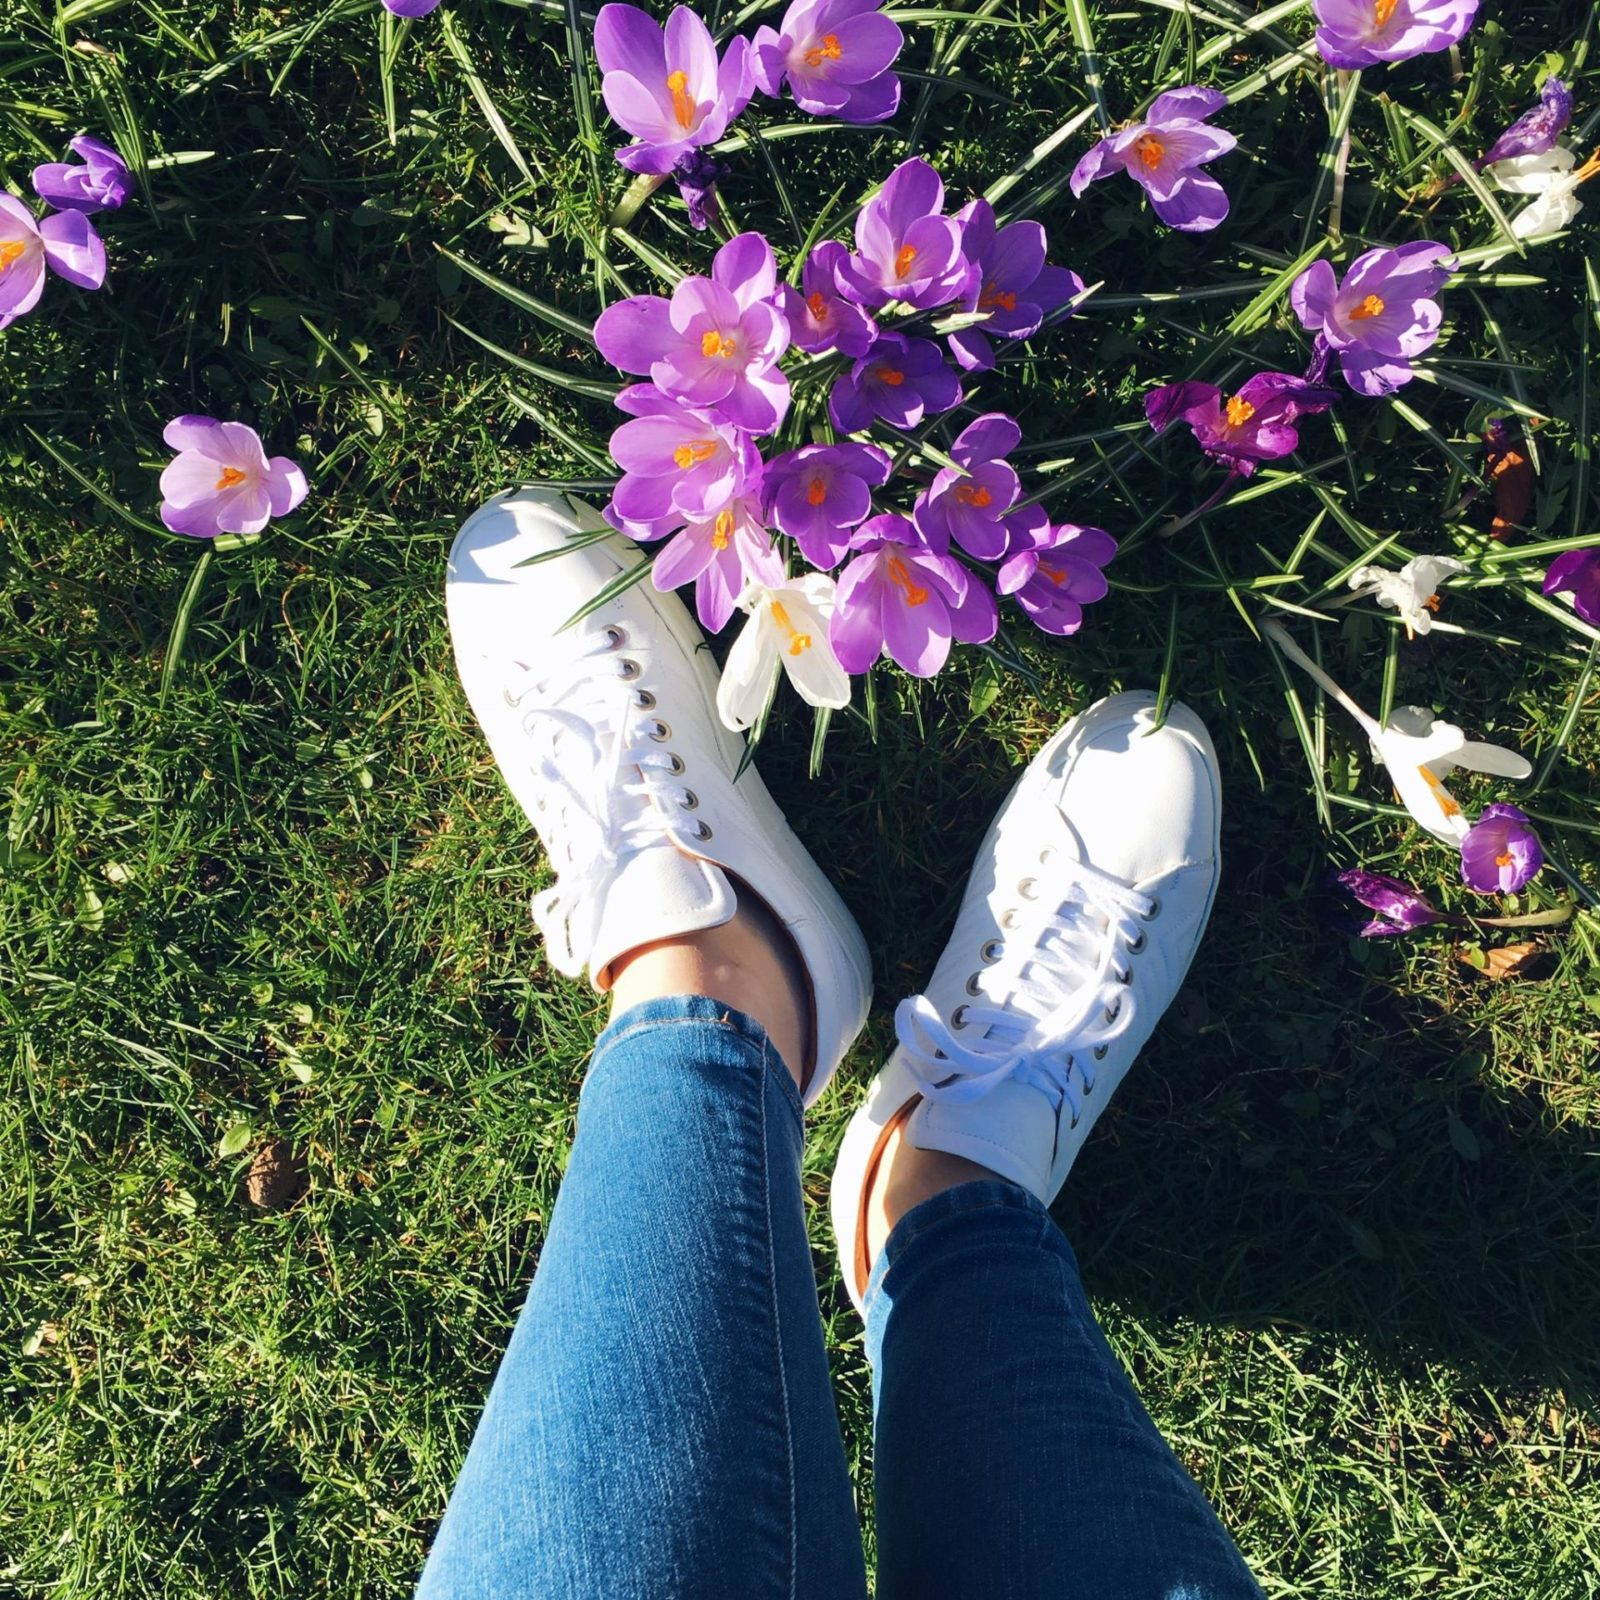 White Sneakers & Extremely Sunny Weather, Happy Spring!